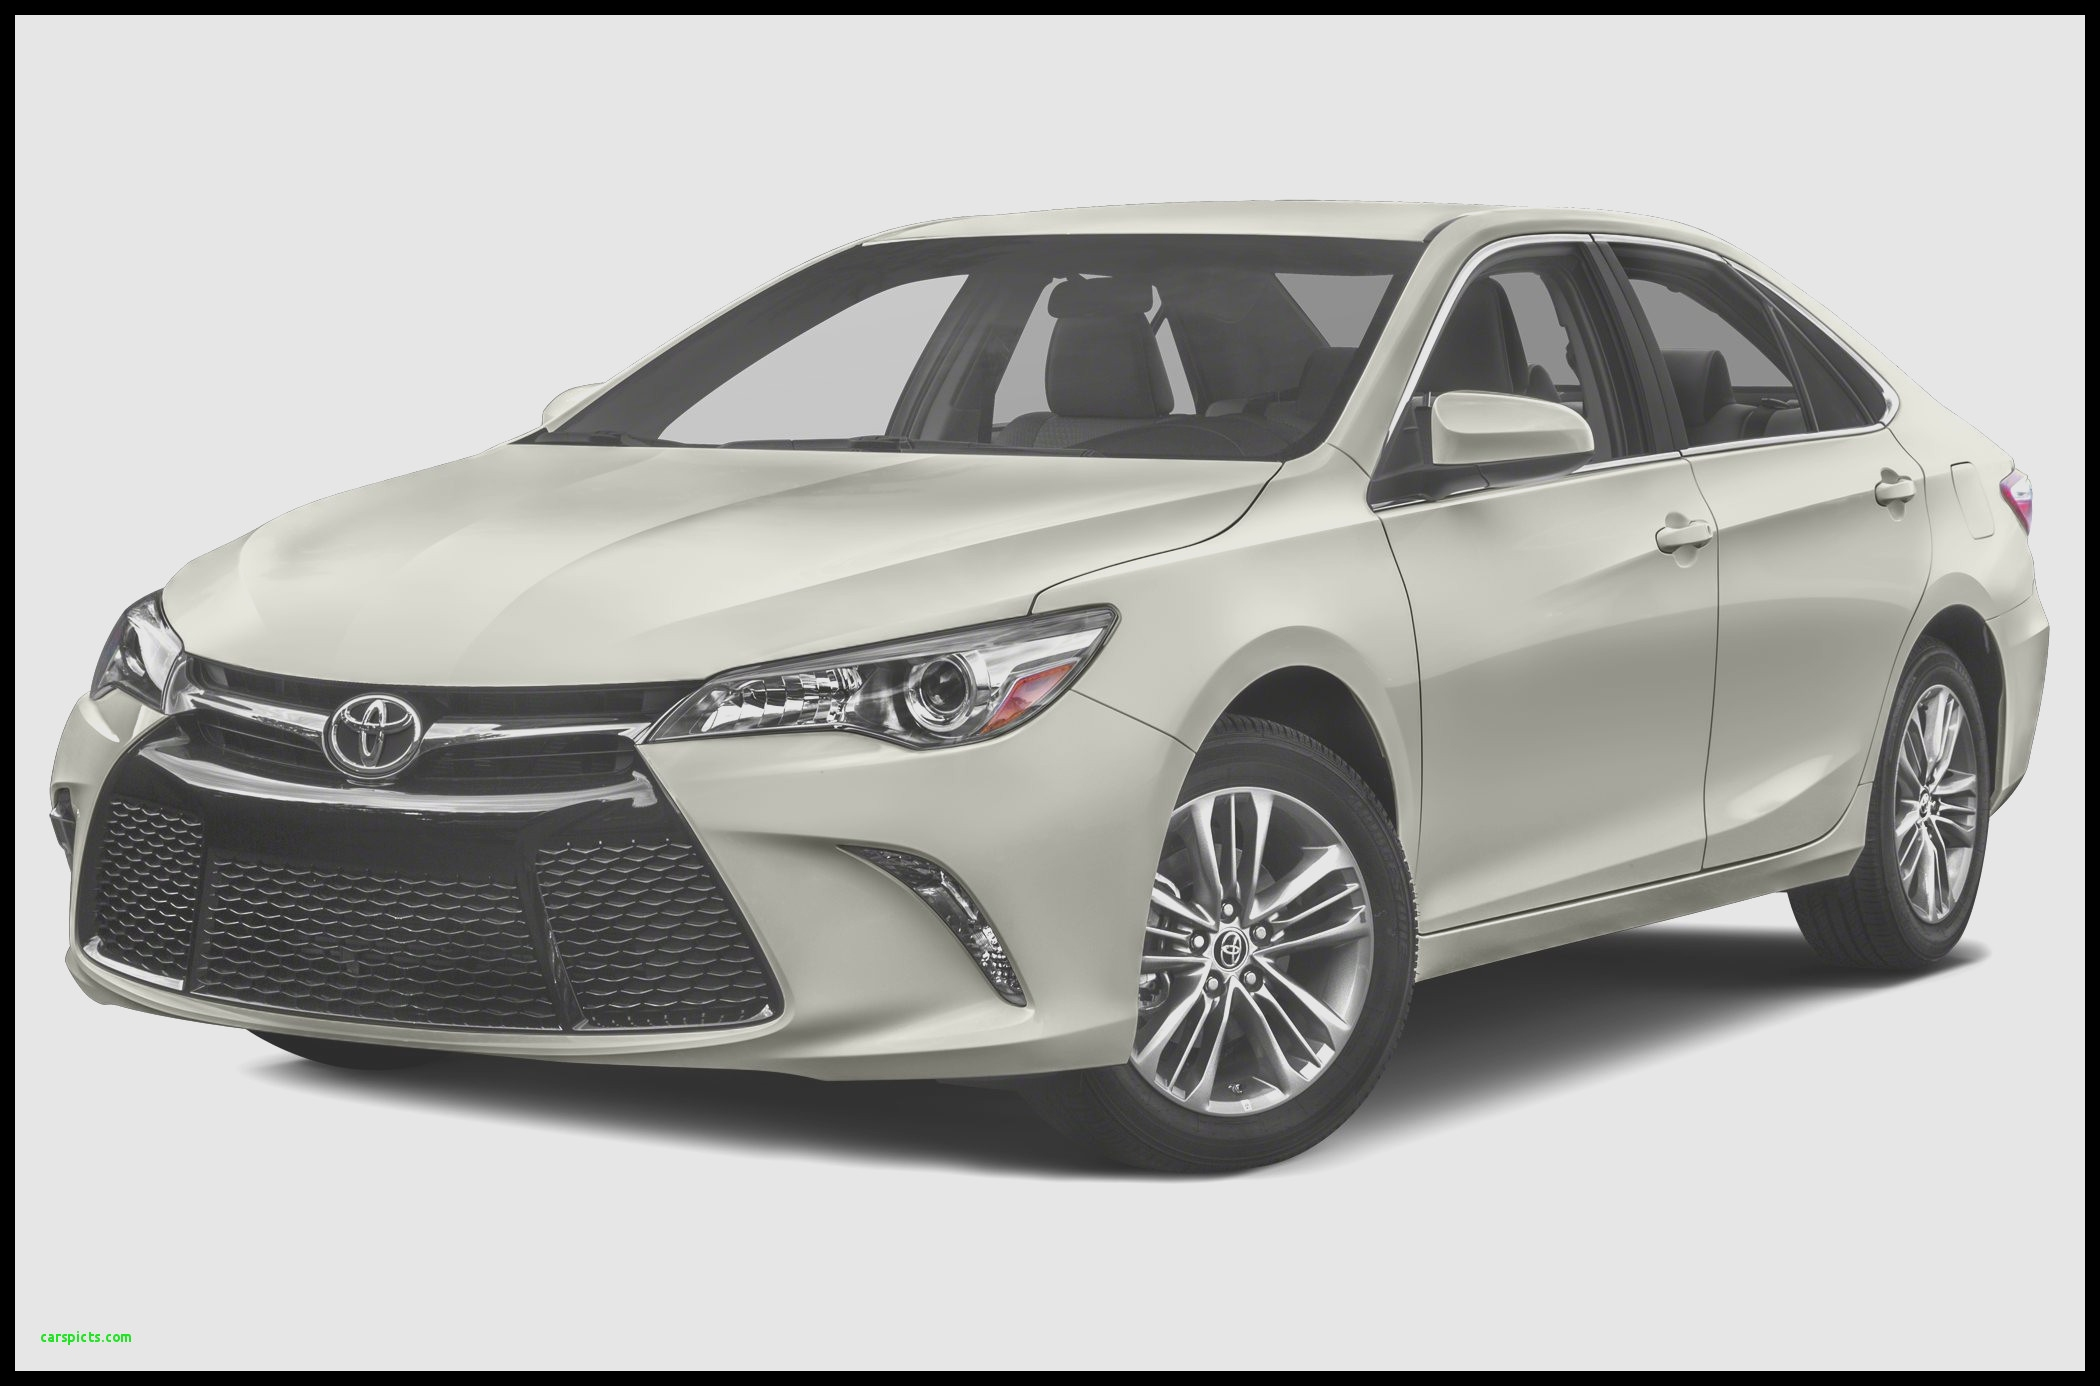 Toyota Camry 2015 Hybrid Black New 2016 toyota Camry Se W Special Edition Pkg 4dr Sedan